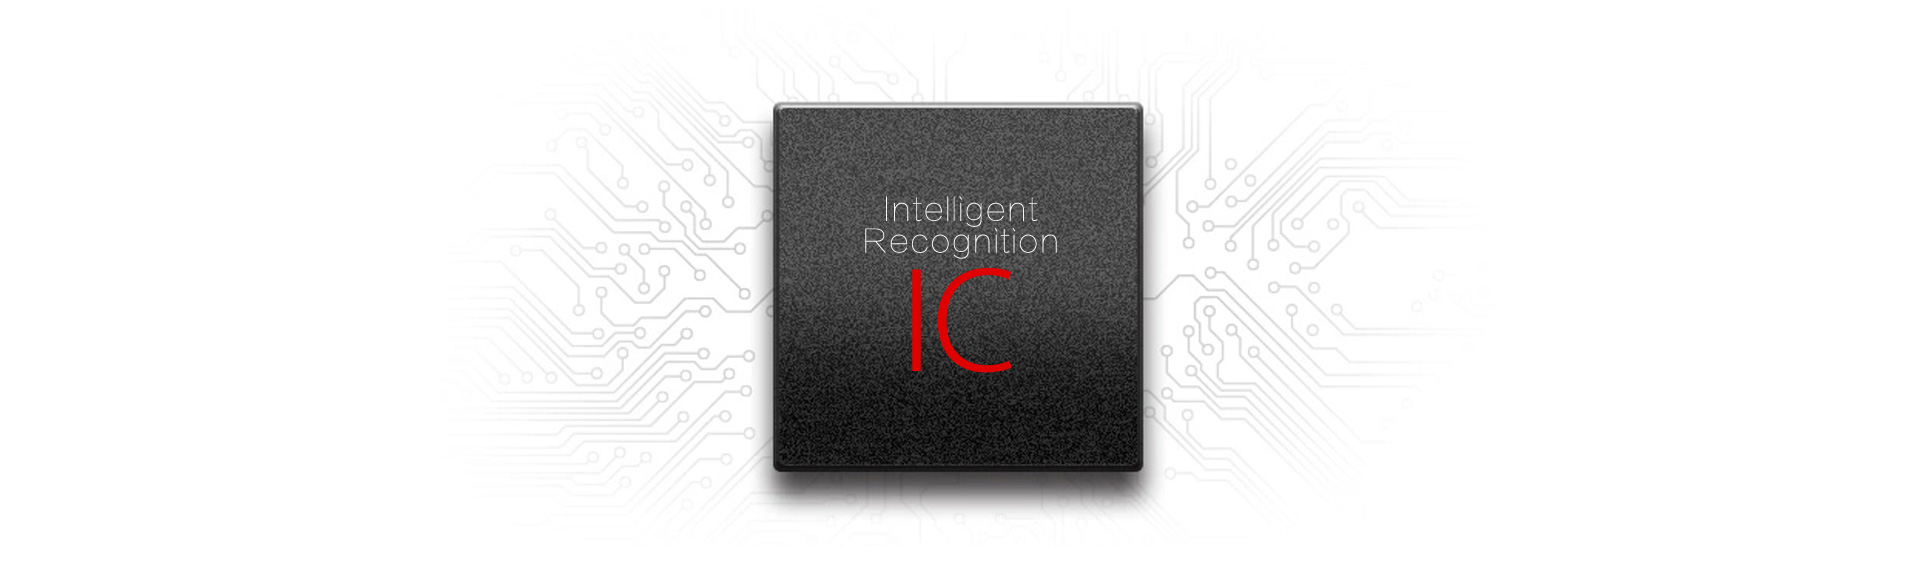 Q1 is built in intelligent recognition IC